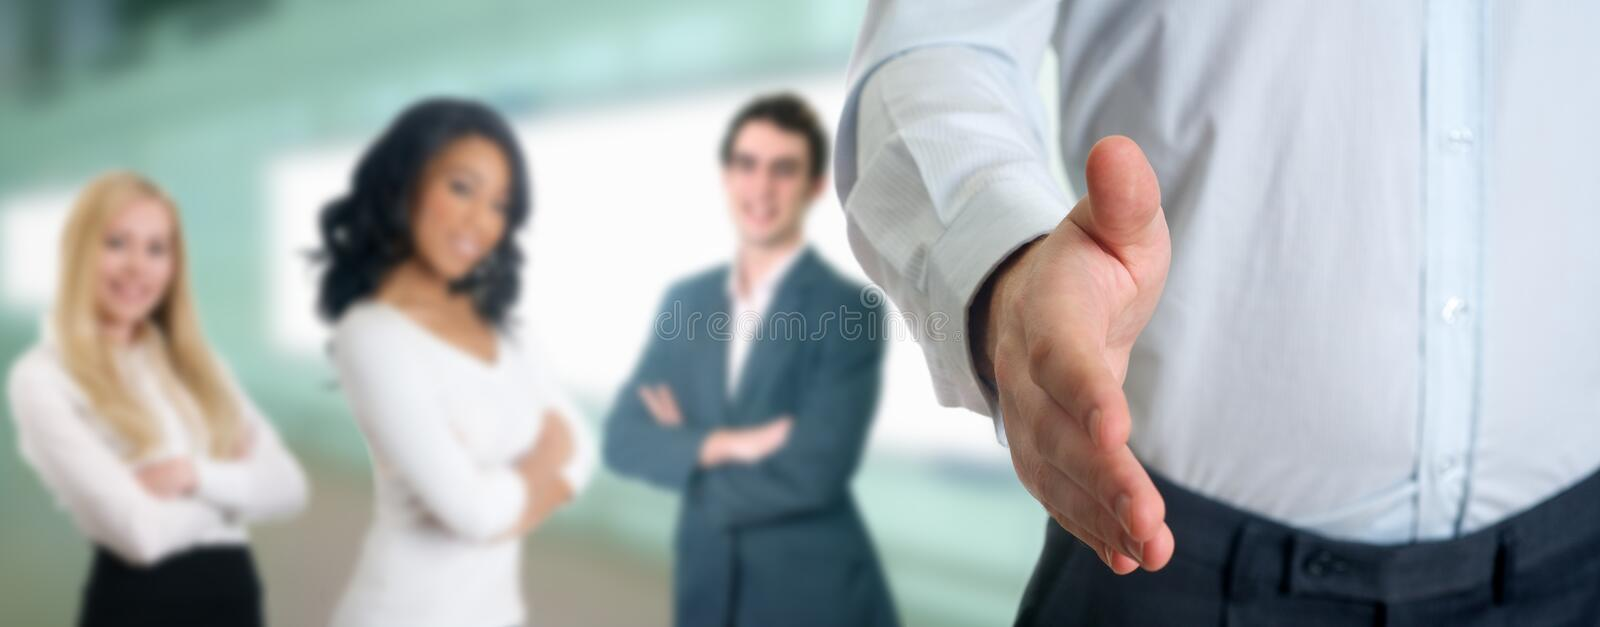 Business professionals shaking hands stock photos